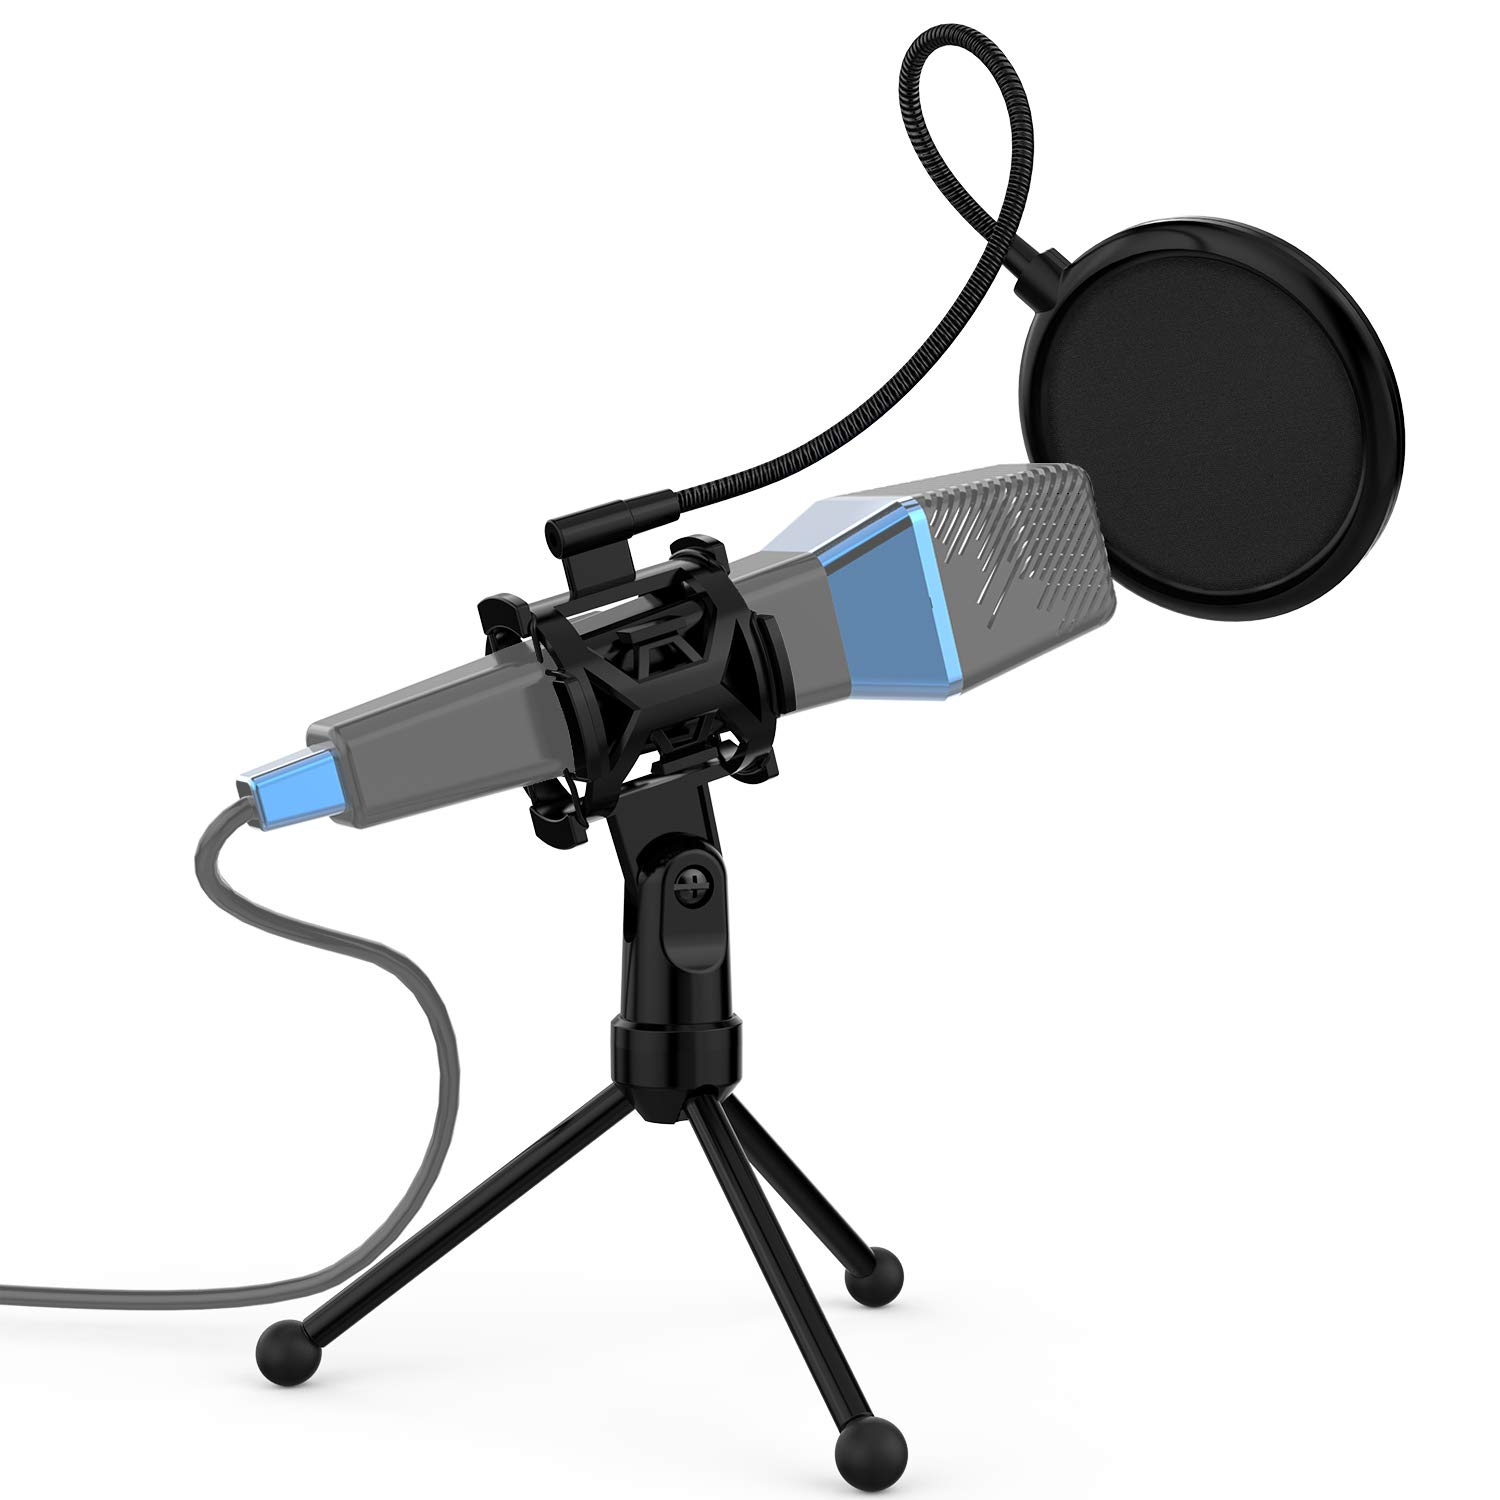 ammoon Mini Foldable Adjustable Desktop Microphone Stand Tripod with MC4 Mic Clip Holder Bracket for Meeting Lectures Podcasts